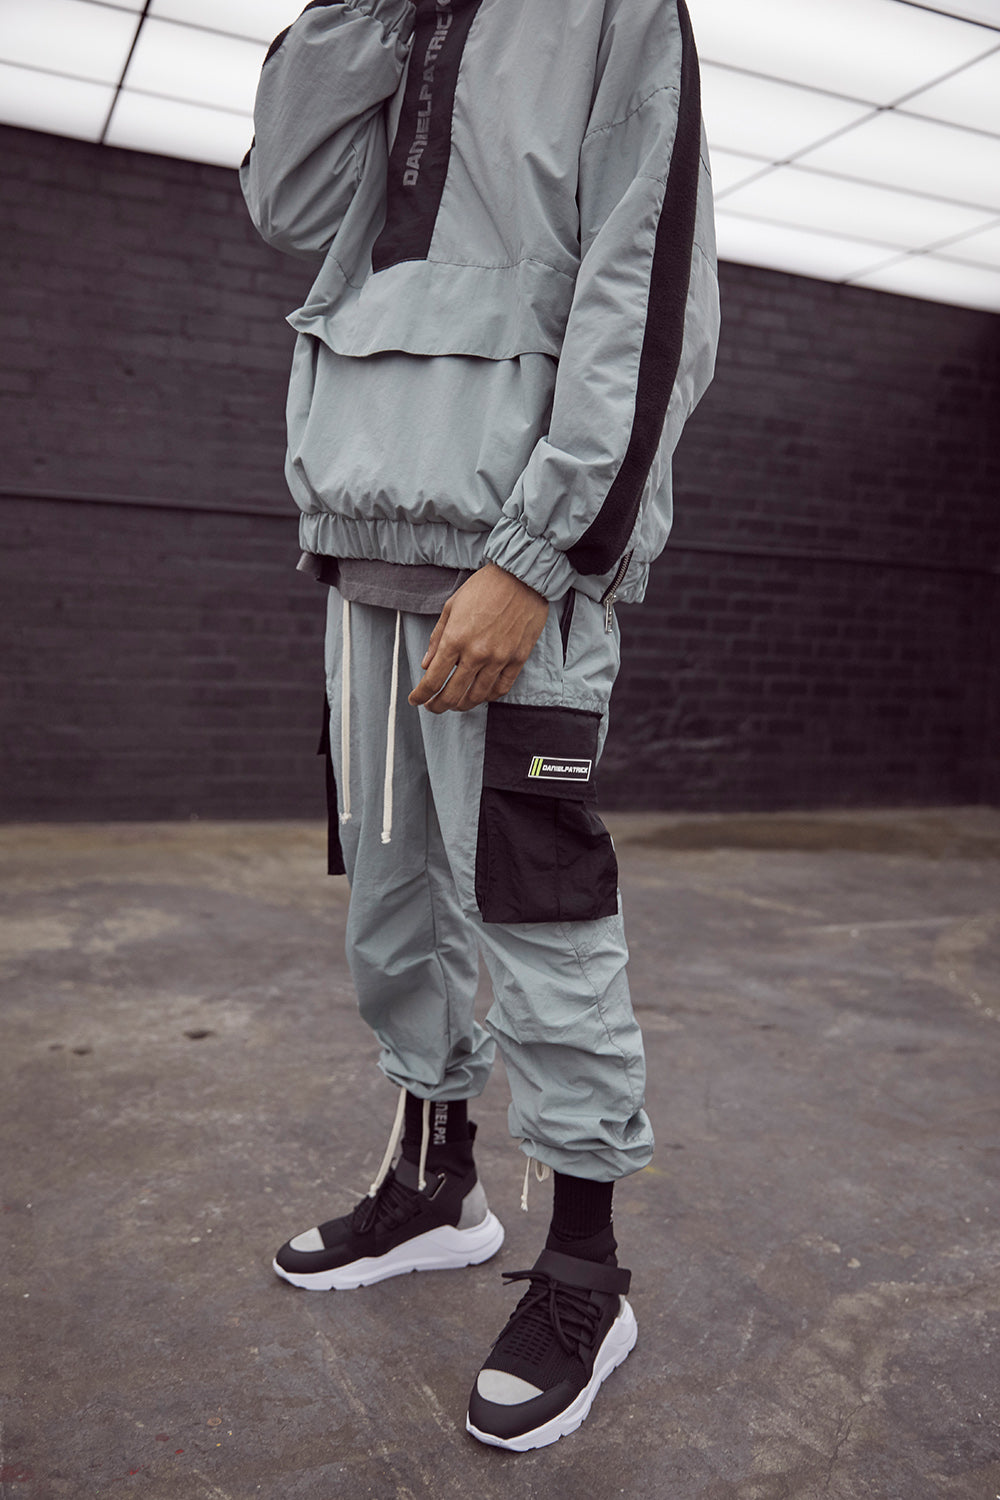 M93 cargo pant in sea foam/black by daniel patrick